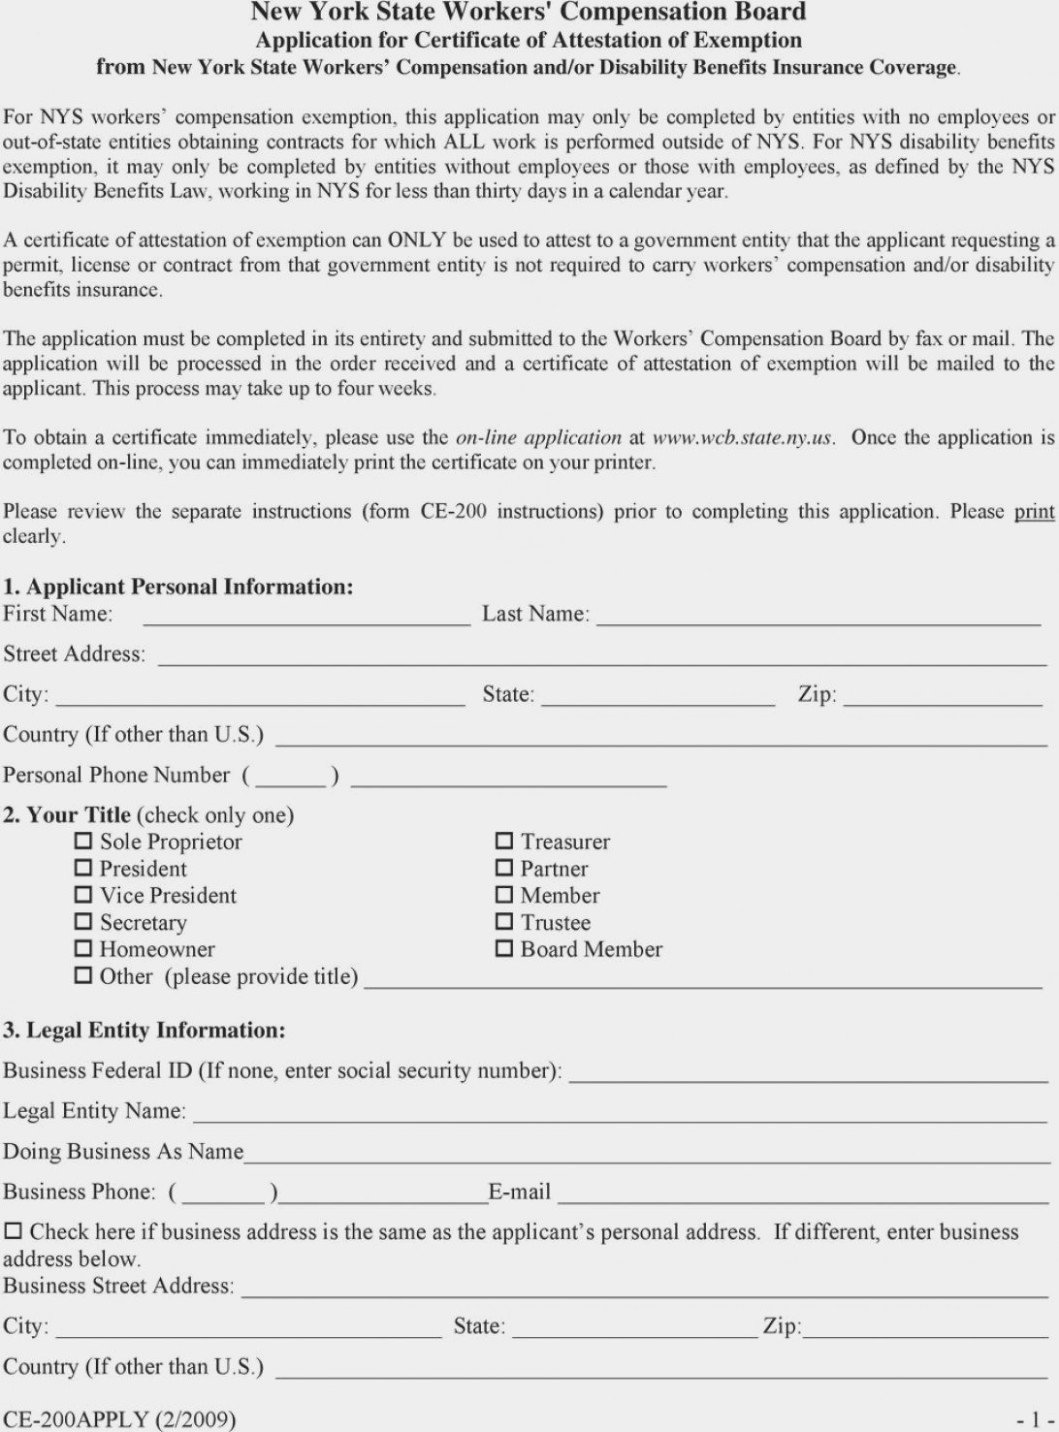 Tn Workers Comp Exemption form is Workers Pensation form Ce 11